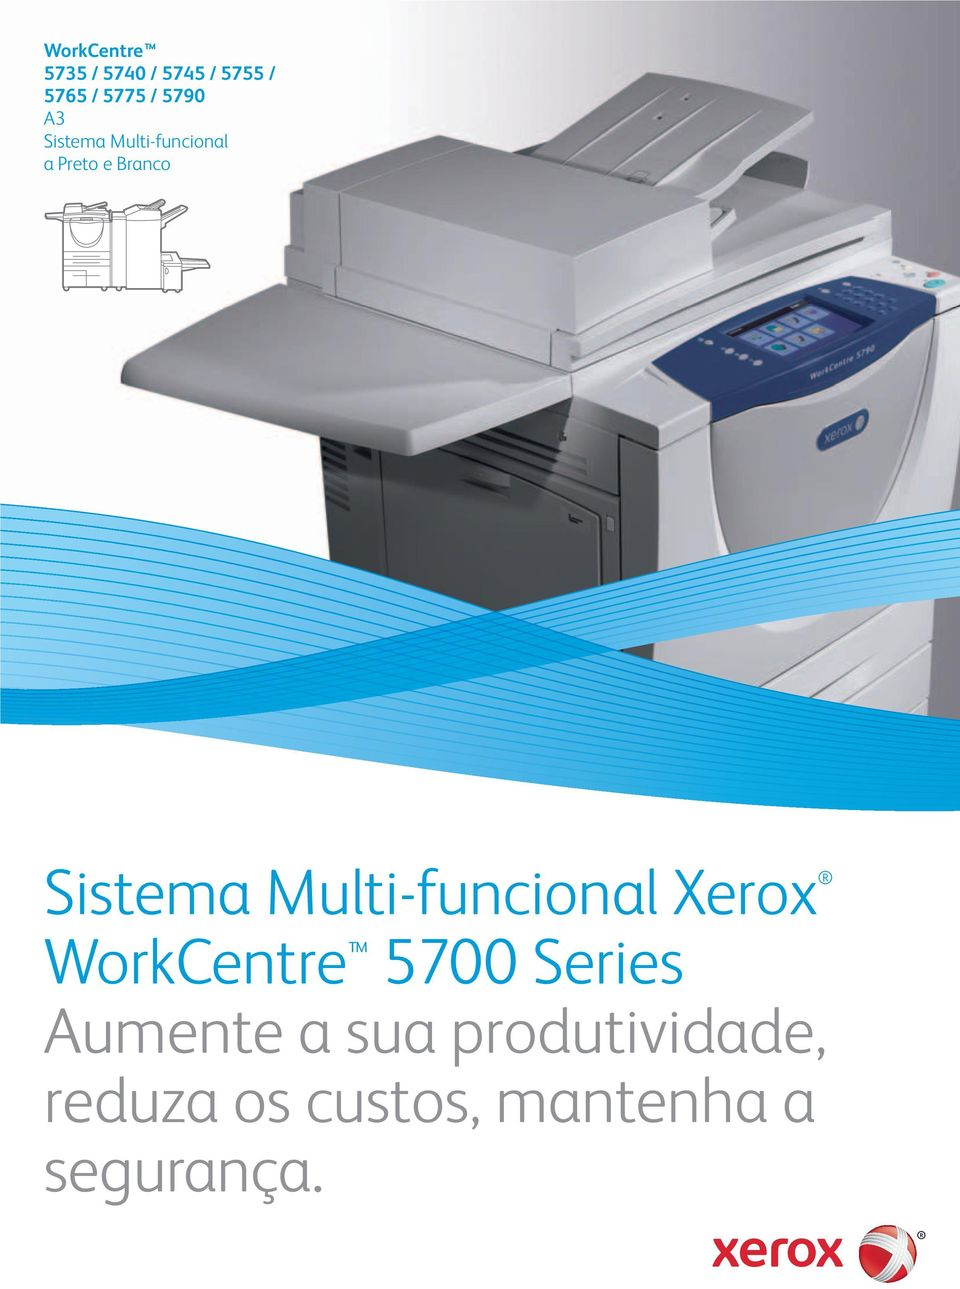 Sistema Multi-funcional Xerox WorkCentre 5700 Series